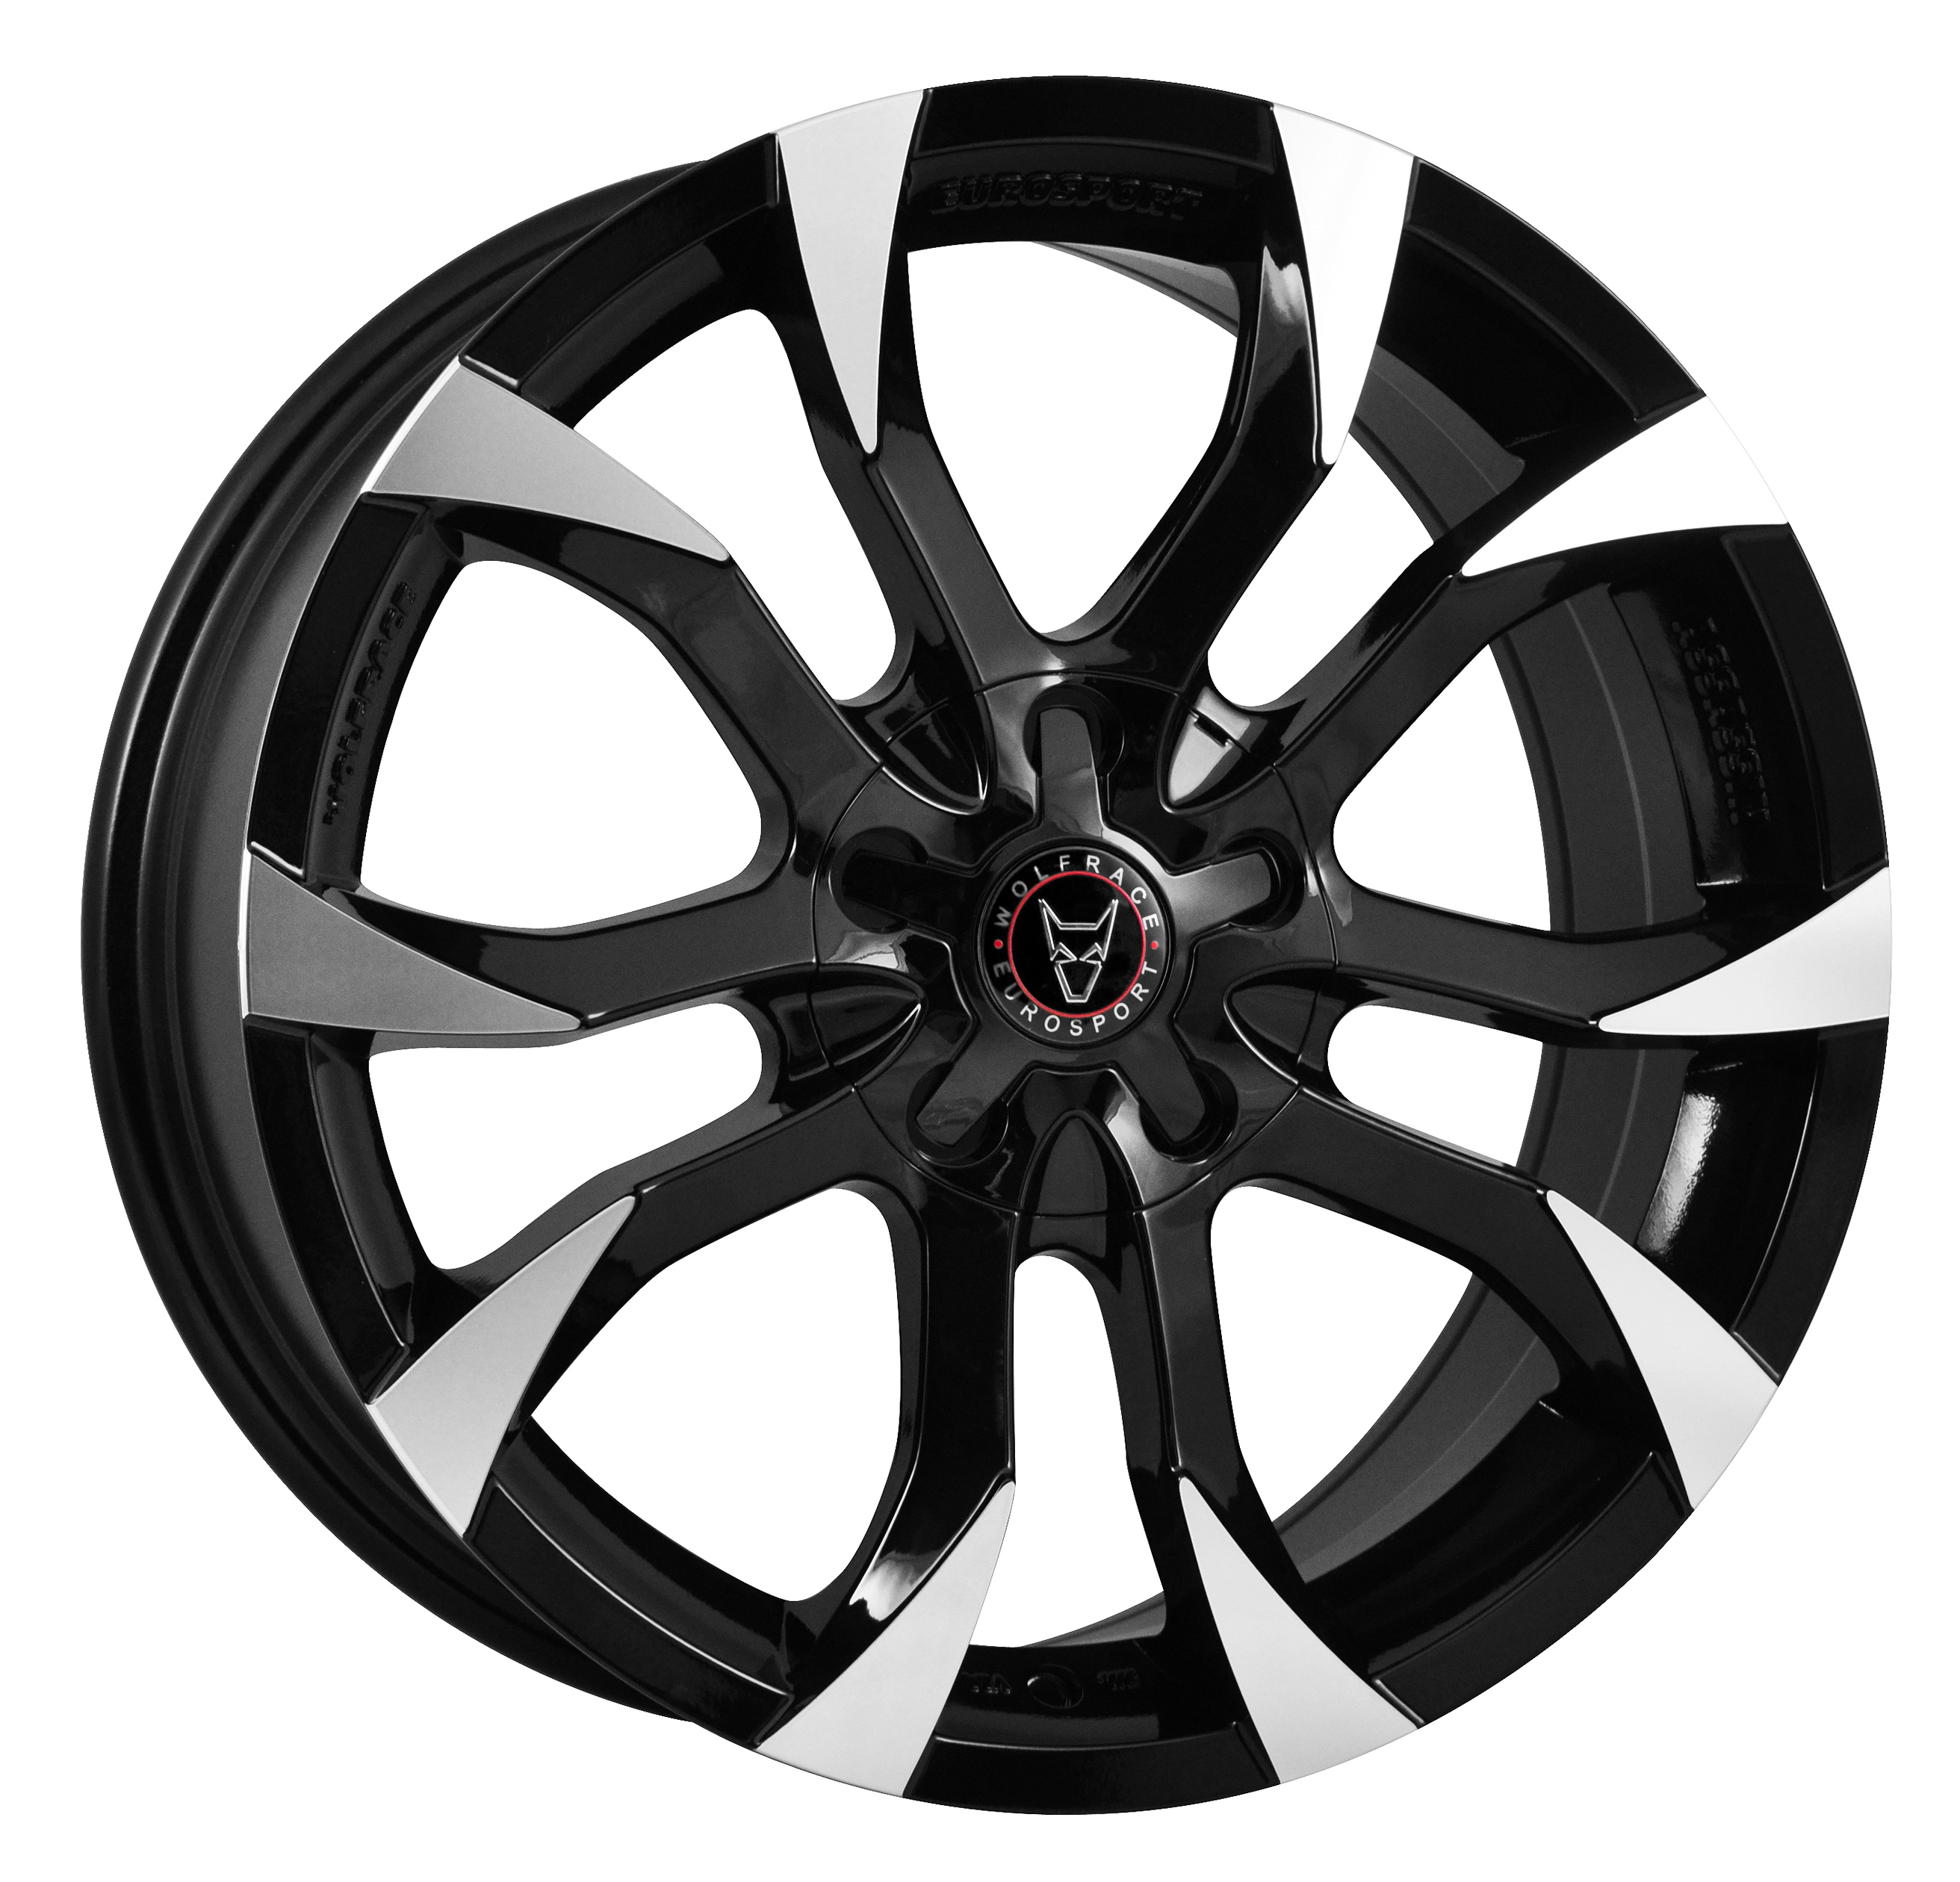 WOLFRACE EUROSPORT ASSASSIN 7x17 5x100 ET35 BLACK POLISHED